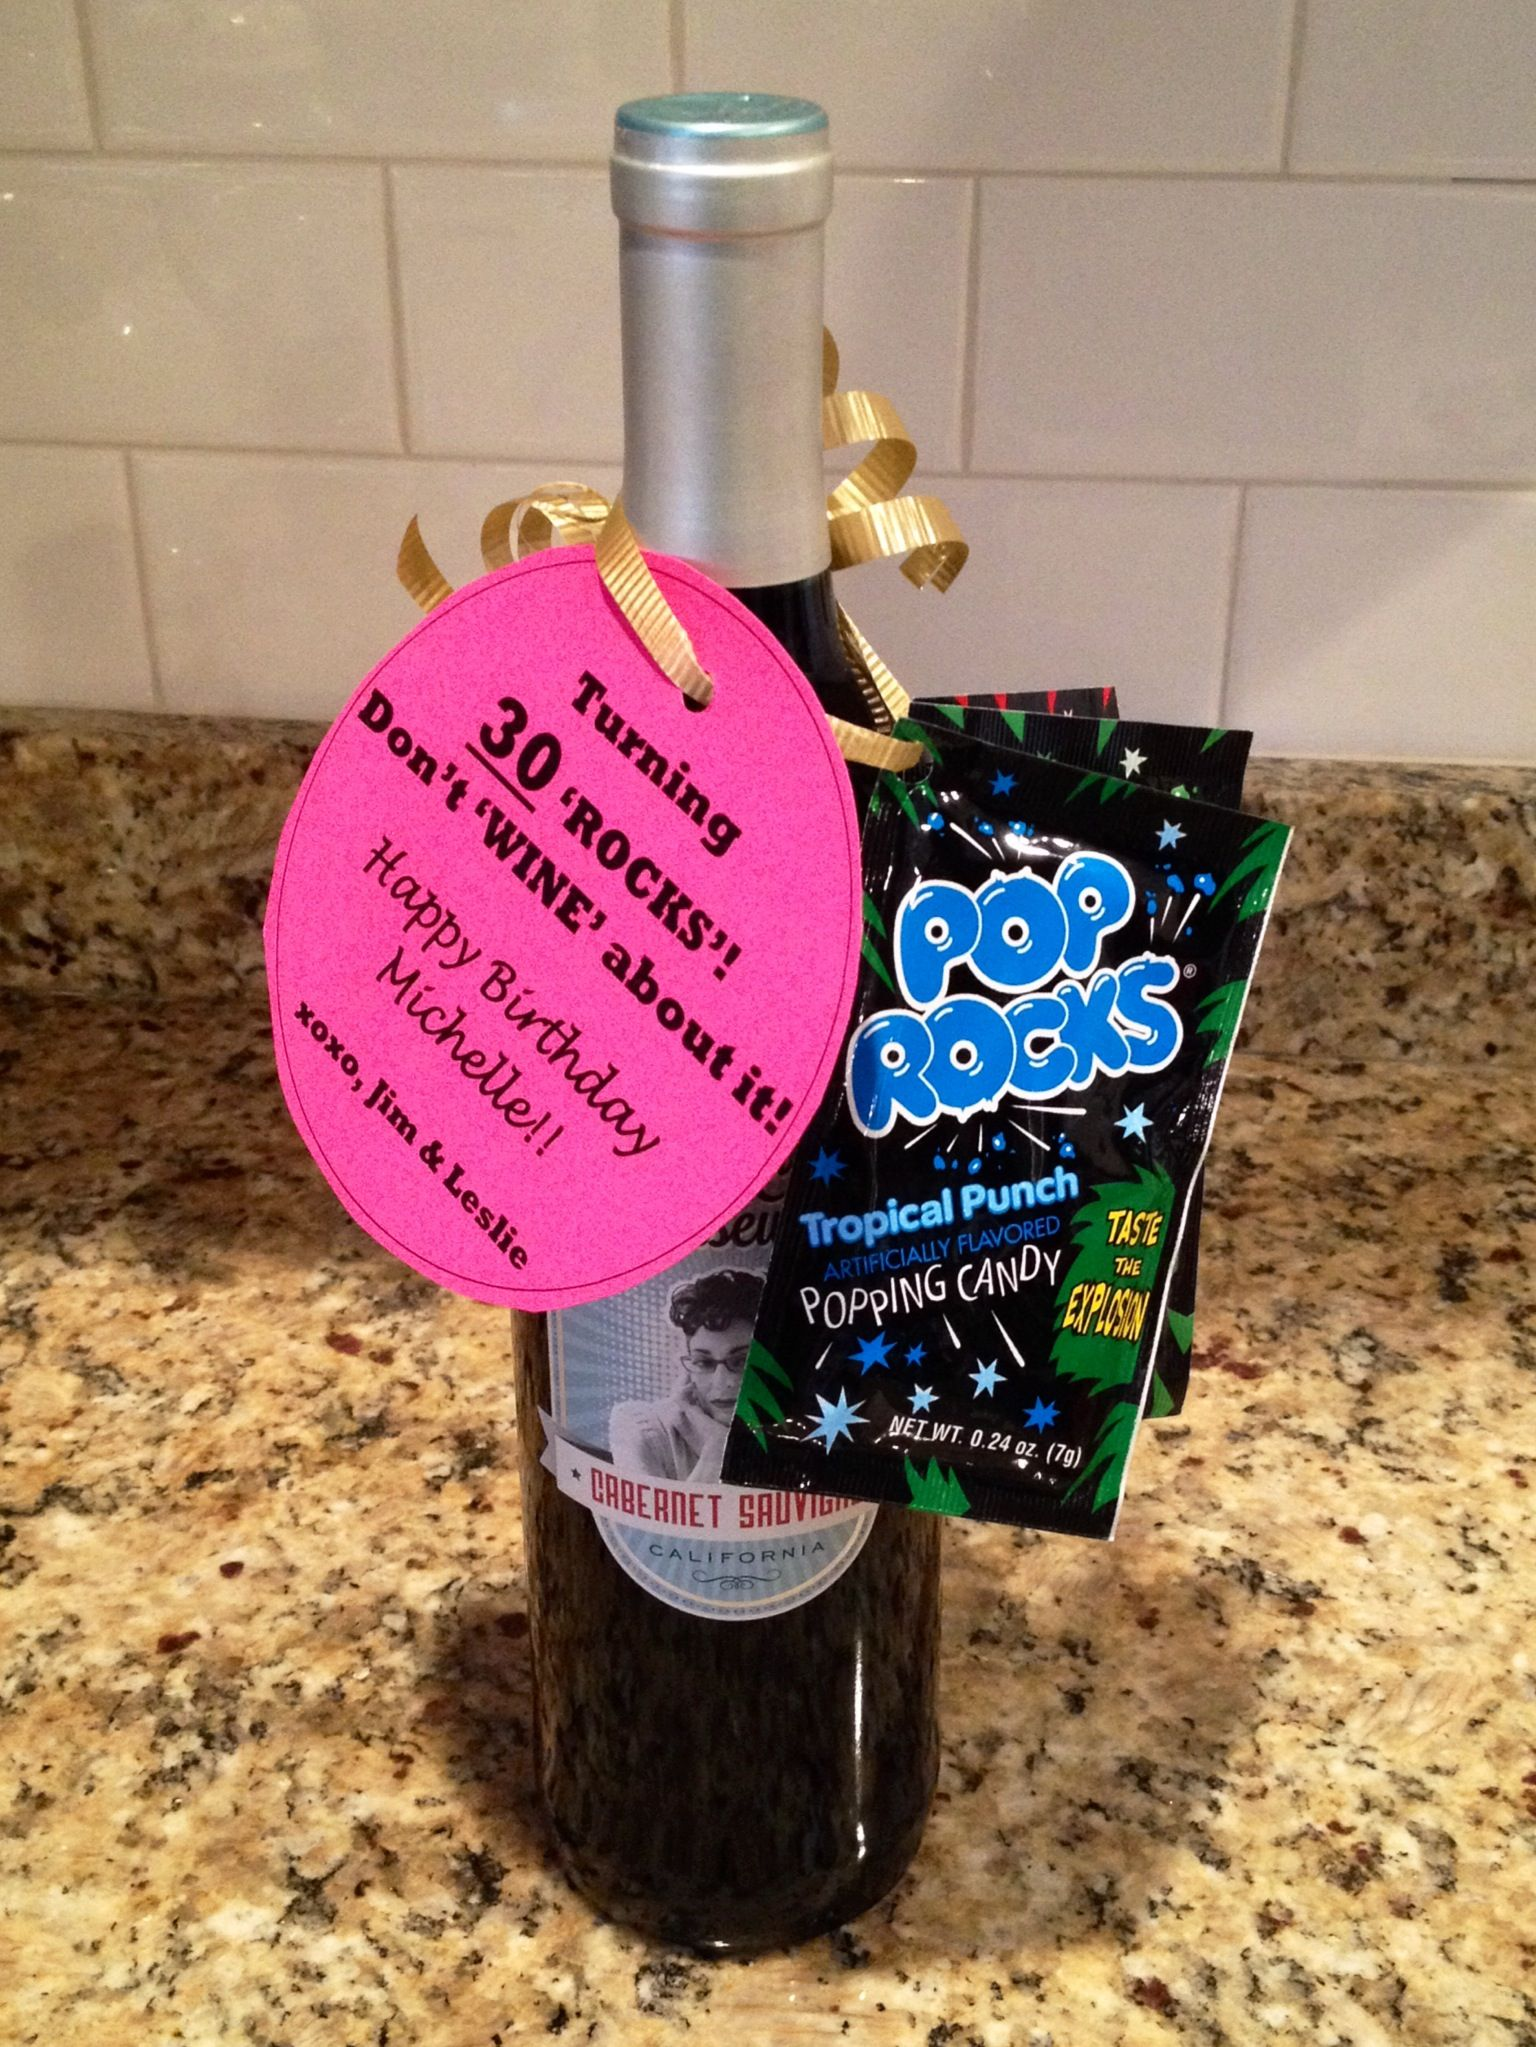 30th Birthday Gift Turning 30 ROCKS Dont WINE About It Pop Rocks Hang Tag Curly Ribbon Fun Bottle Of Wine